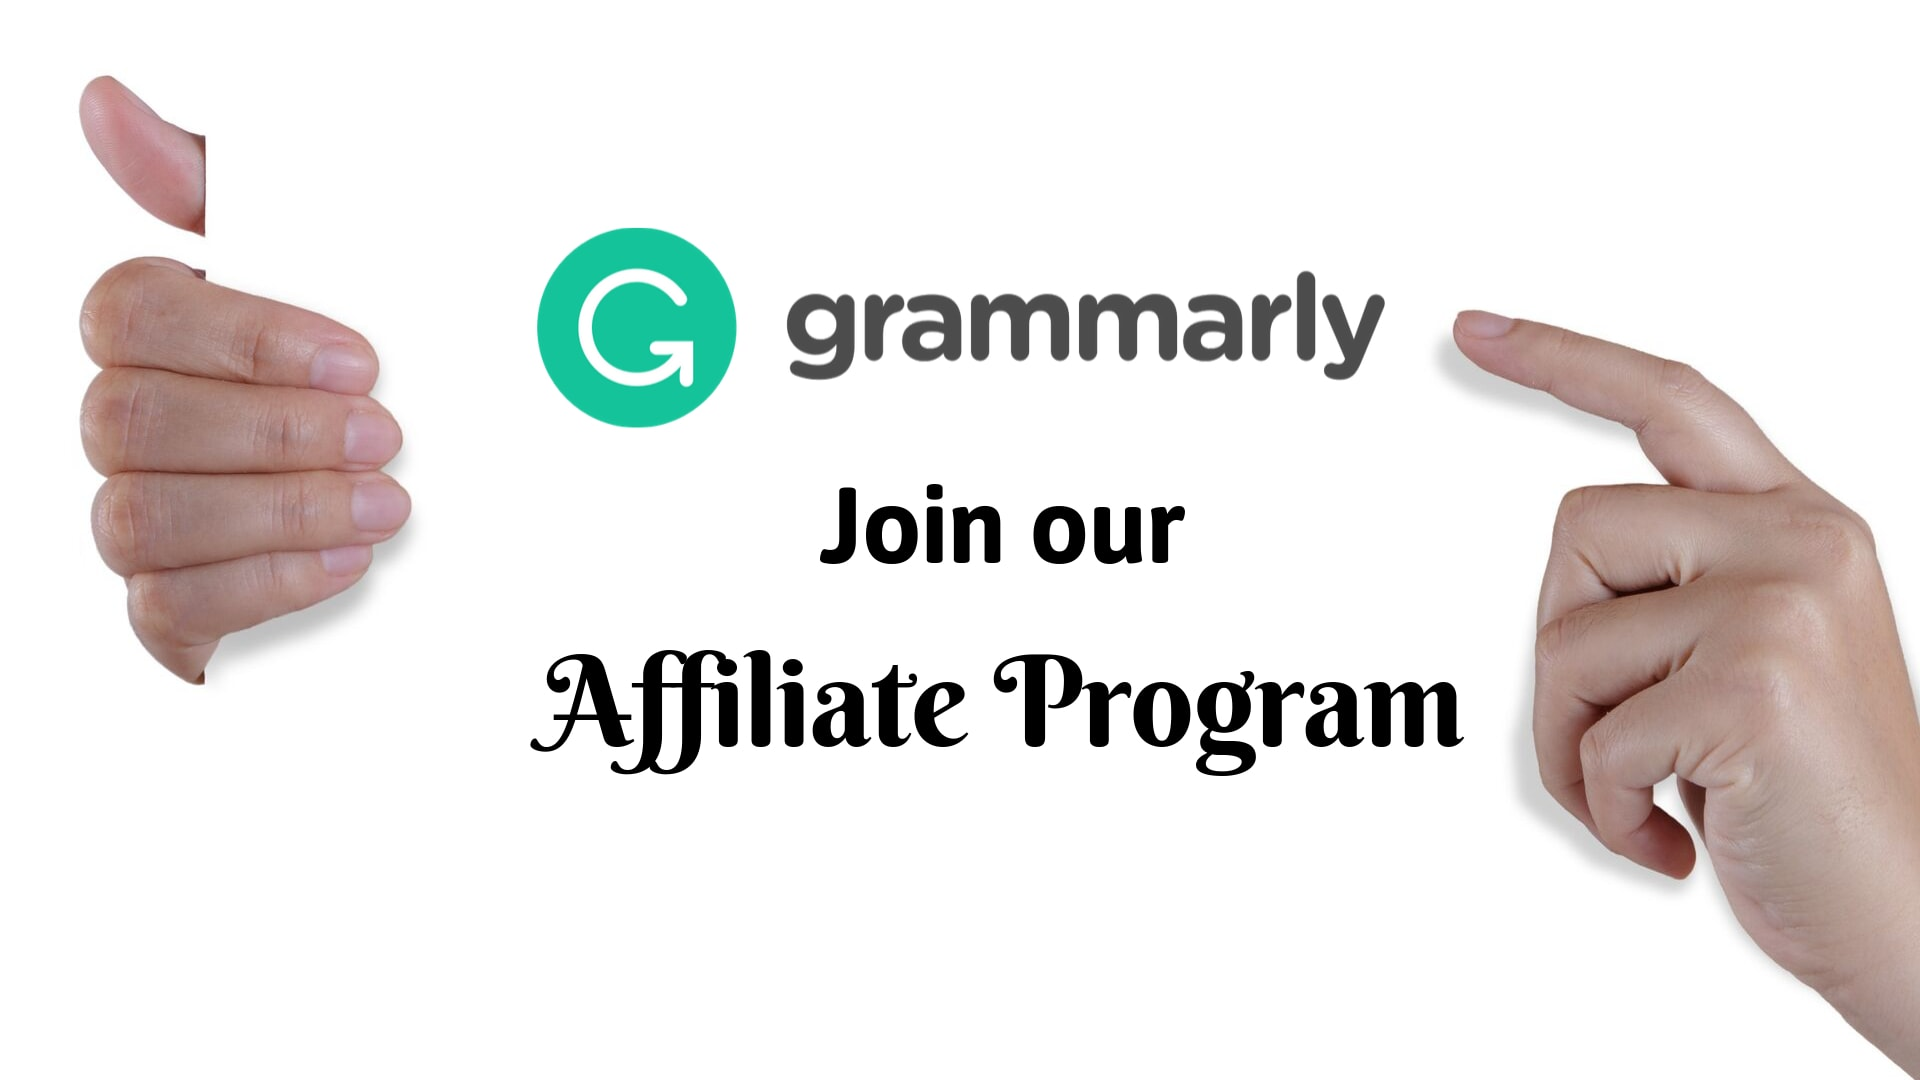 Grammarly Affiliate Program - Grammarly Premium Free 100% Working Method 2020